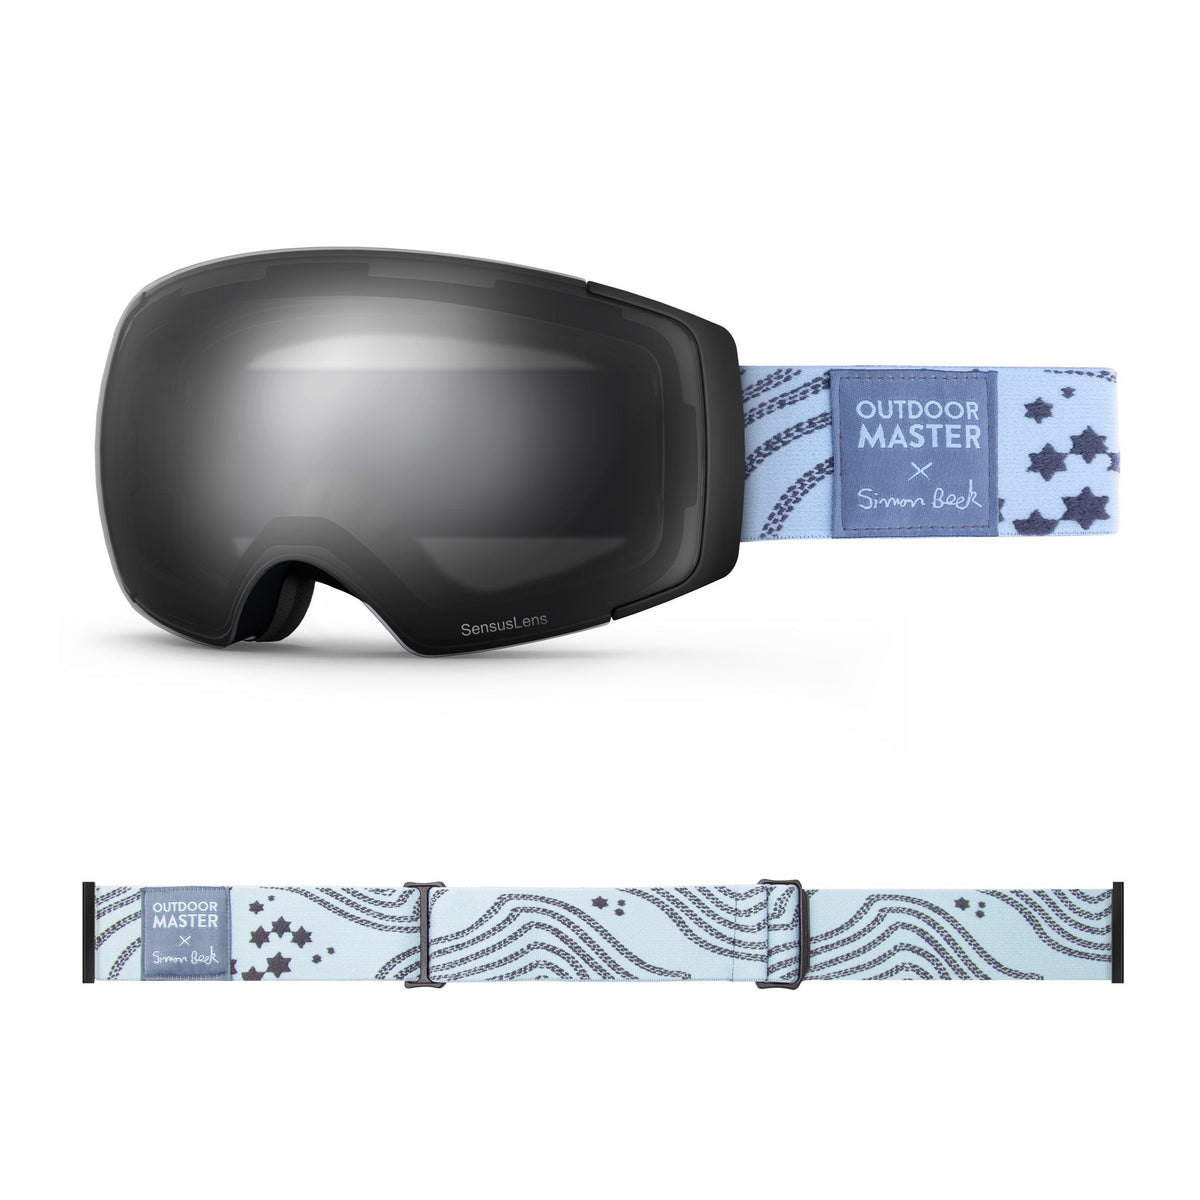 OutdoorMaster x Simon Beck Ski Goggles Pro Series - Snowshoeing Art Limited Edition OutdoorMaster SensusLens VLT 16-80% Photochromatic clear to Grey Star Road-Lightsteelblue